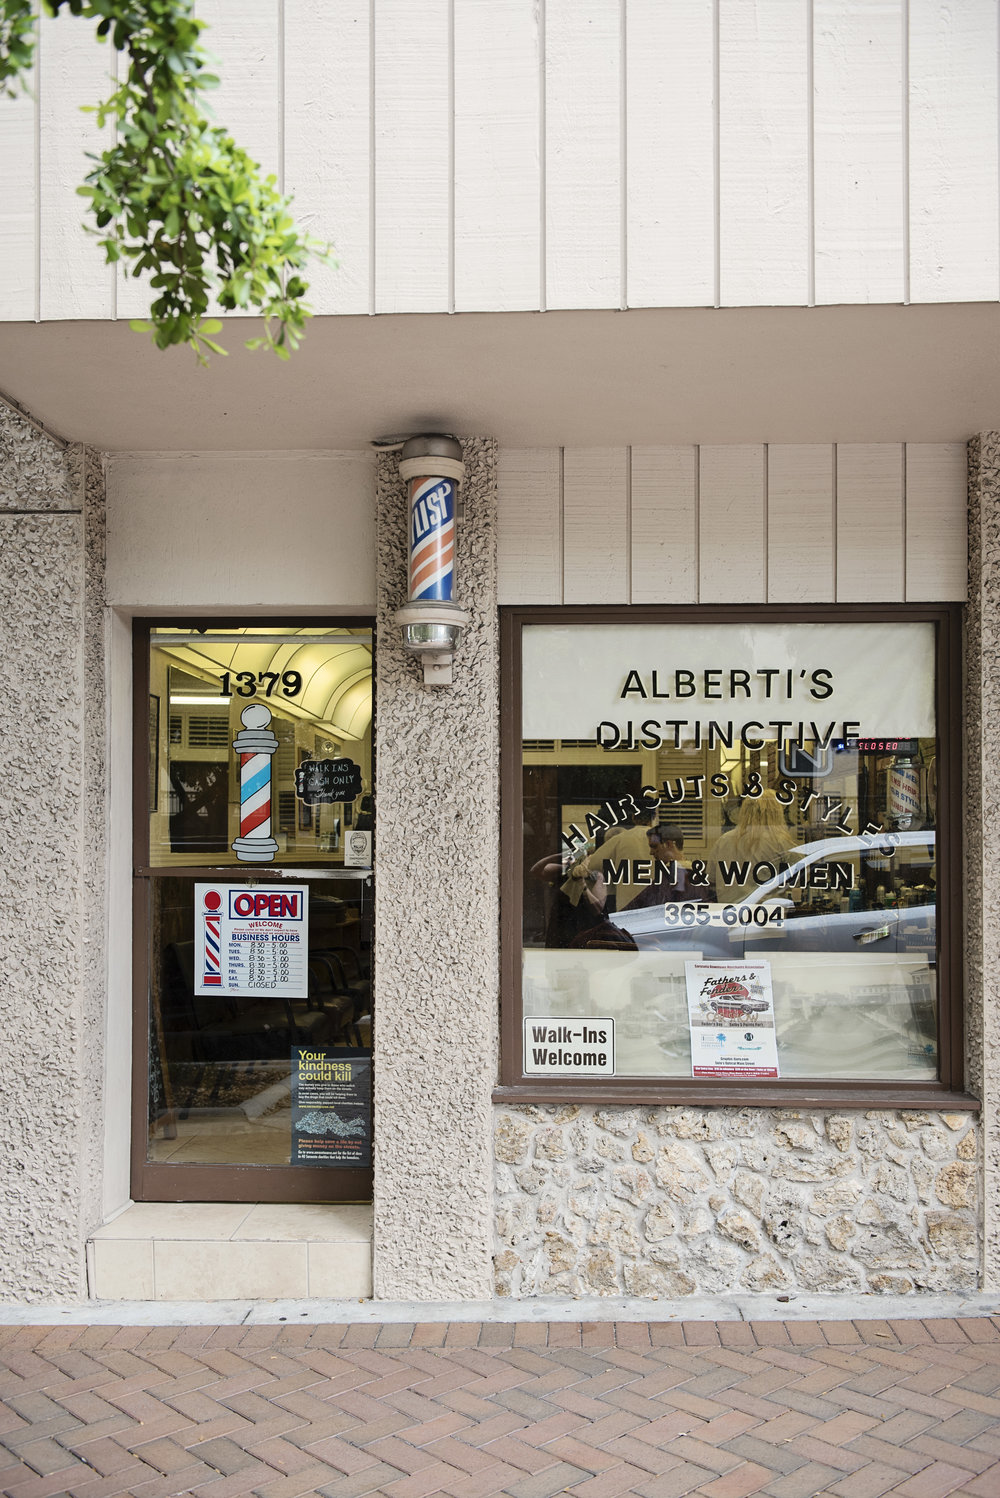 Alberti's Distinctive Haircuts & Styles